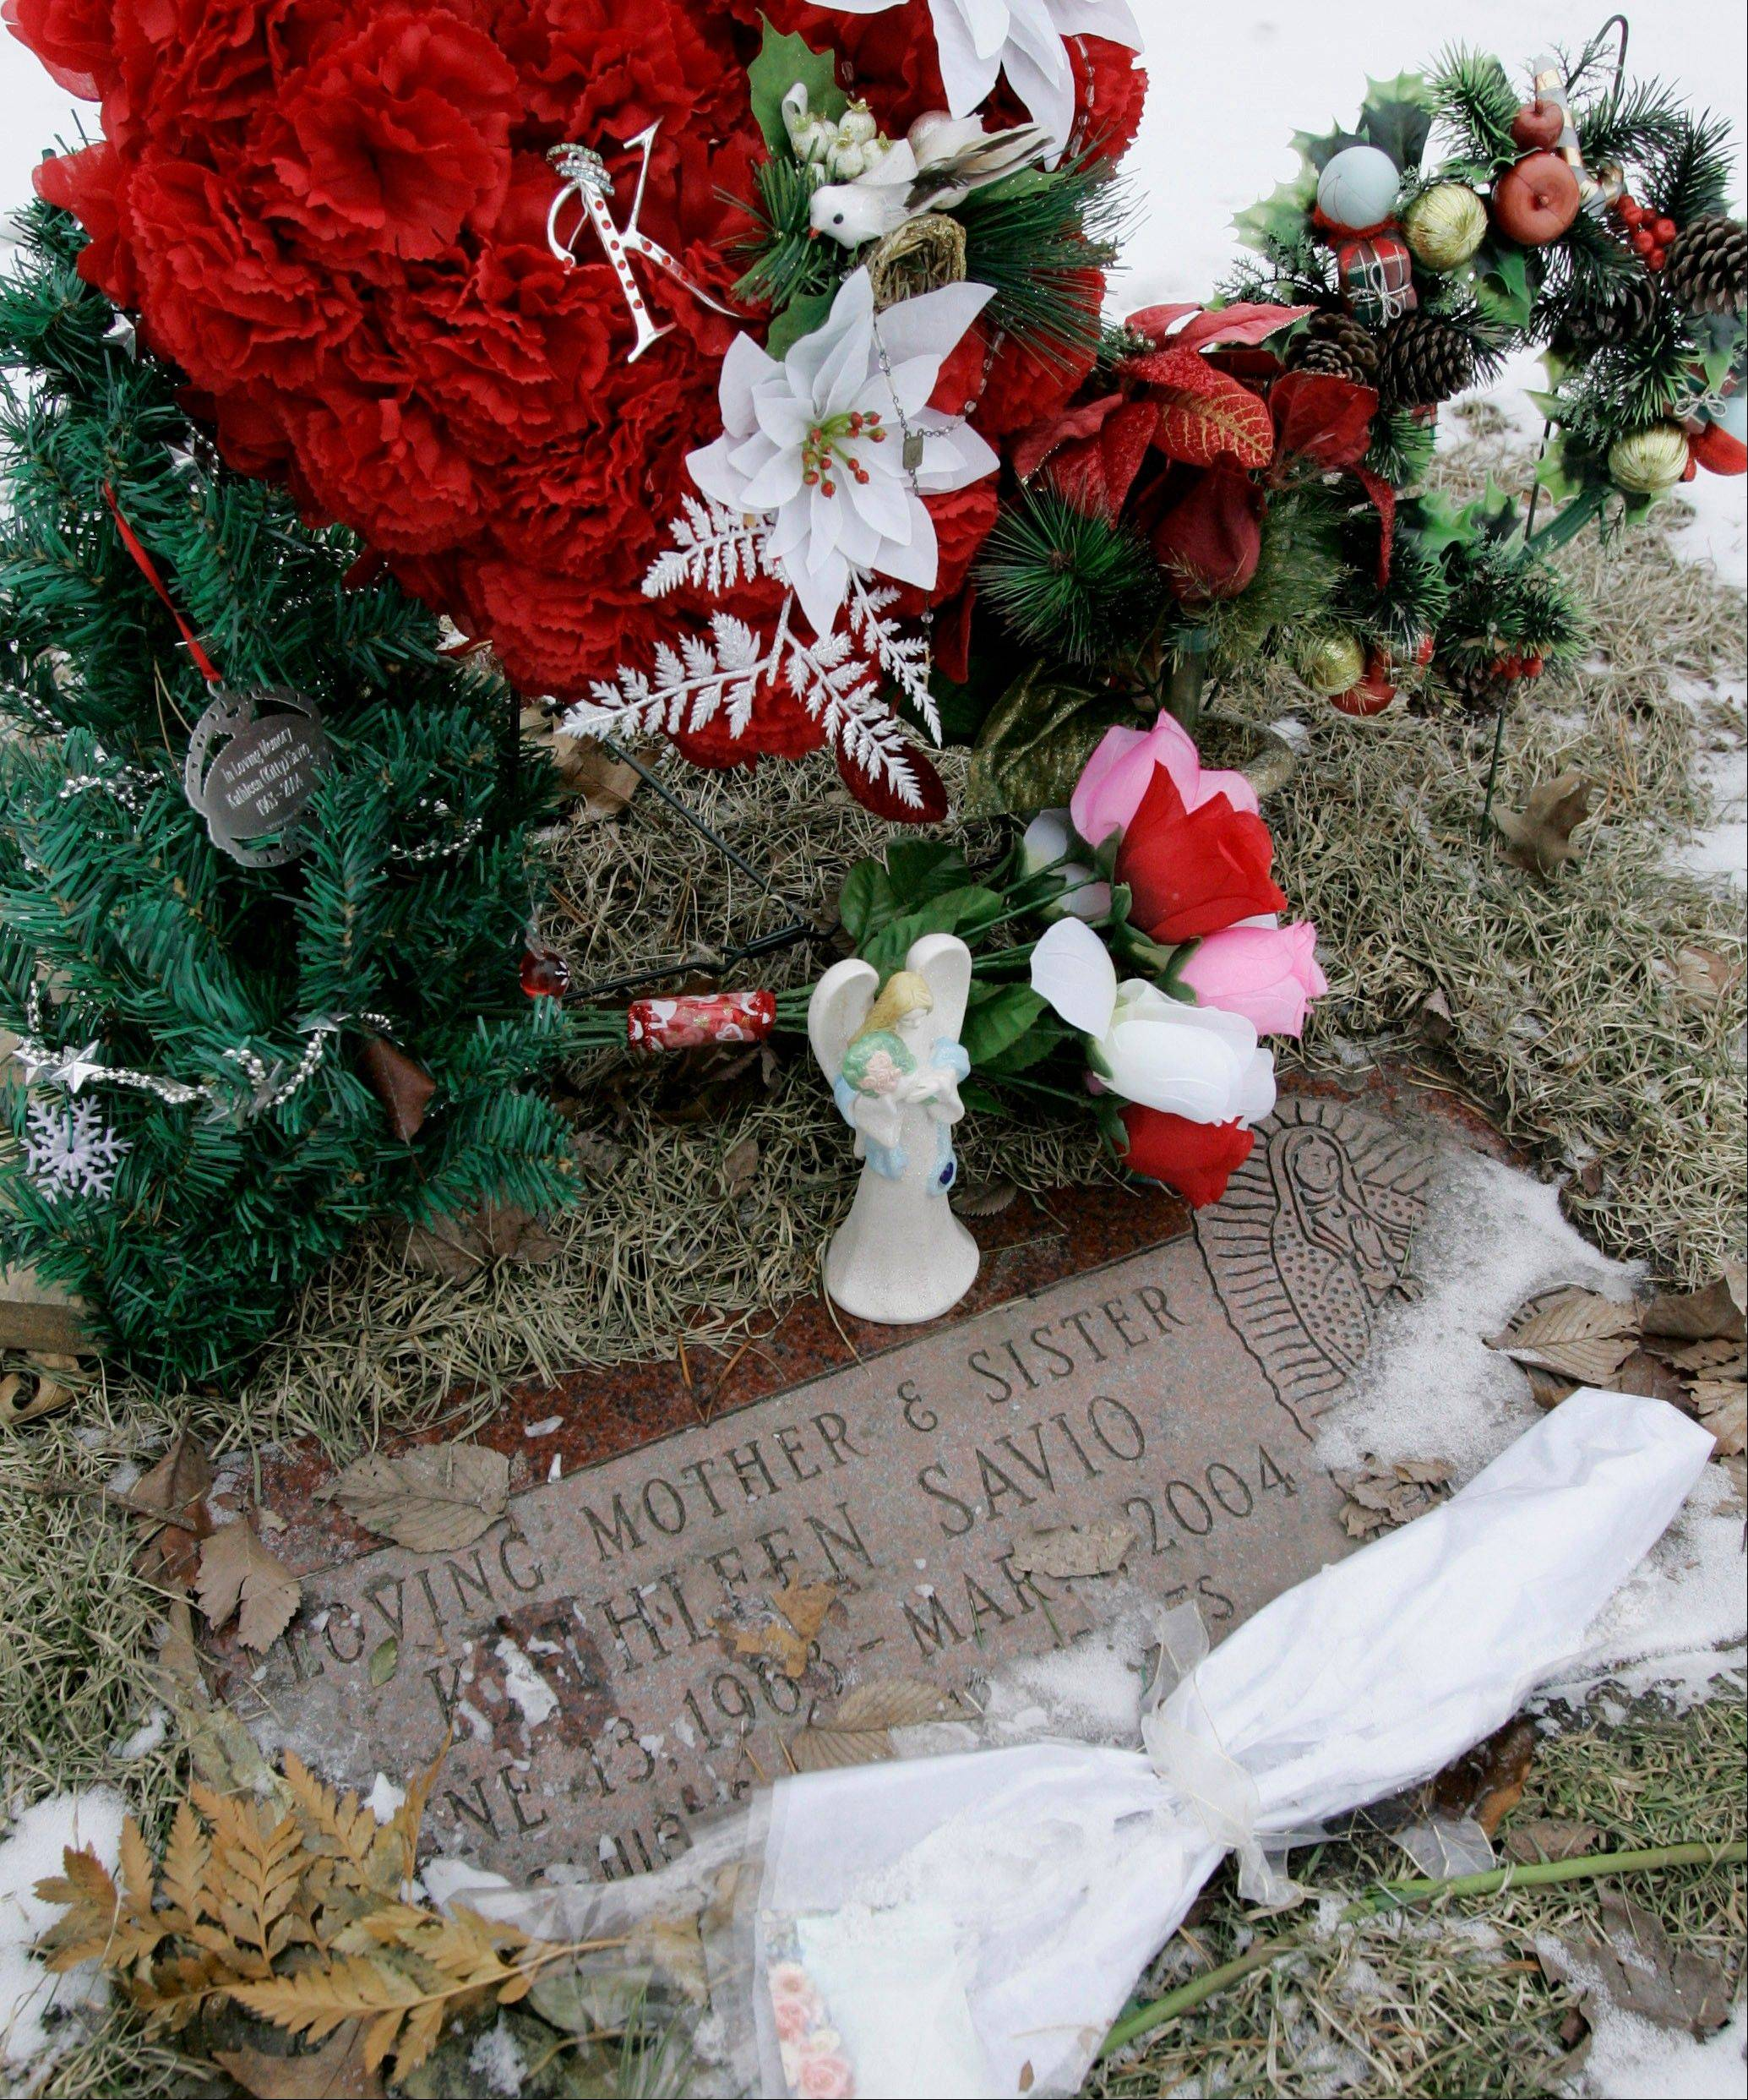 Flowers and a small angel statue surround the grave marker of Kathleen Savio, the third wife of Drew Peterson, at the Queen of Heaven Cemetery in Hillside on Feb. 22, 2008.